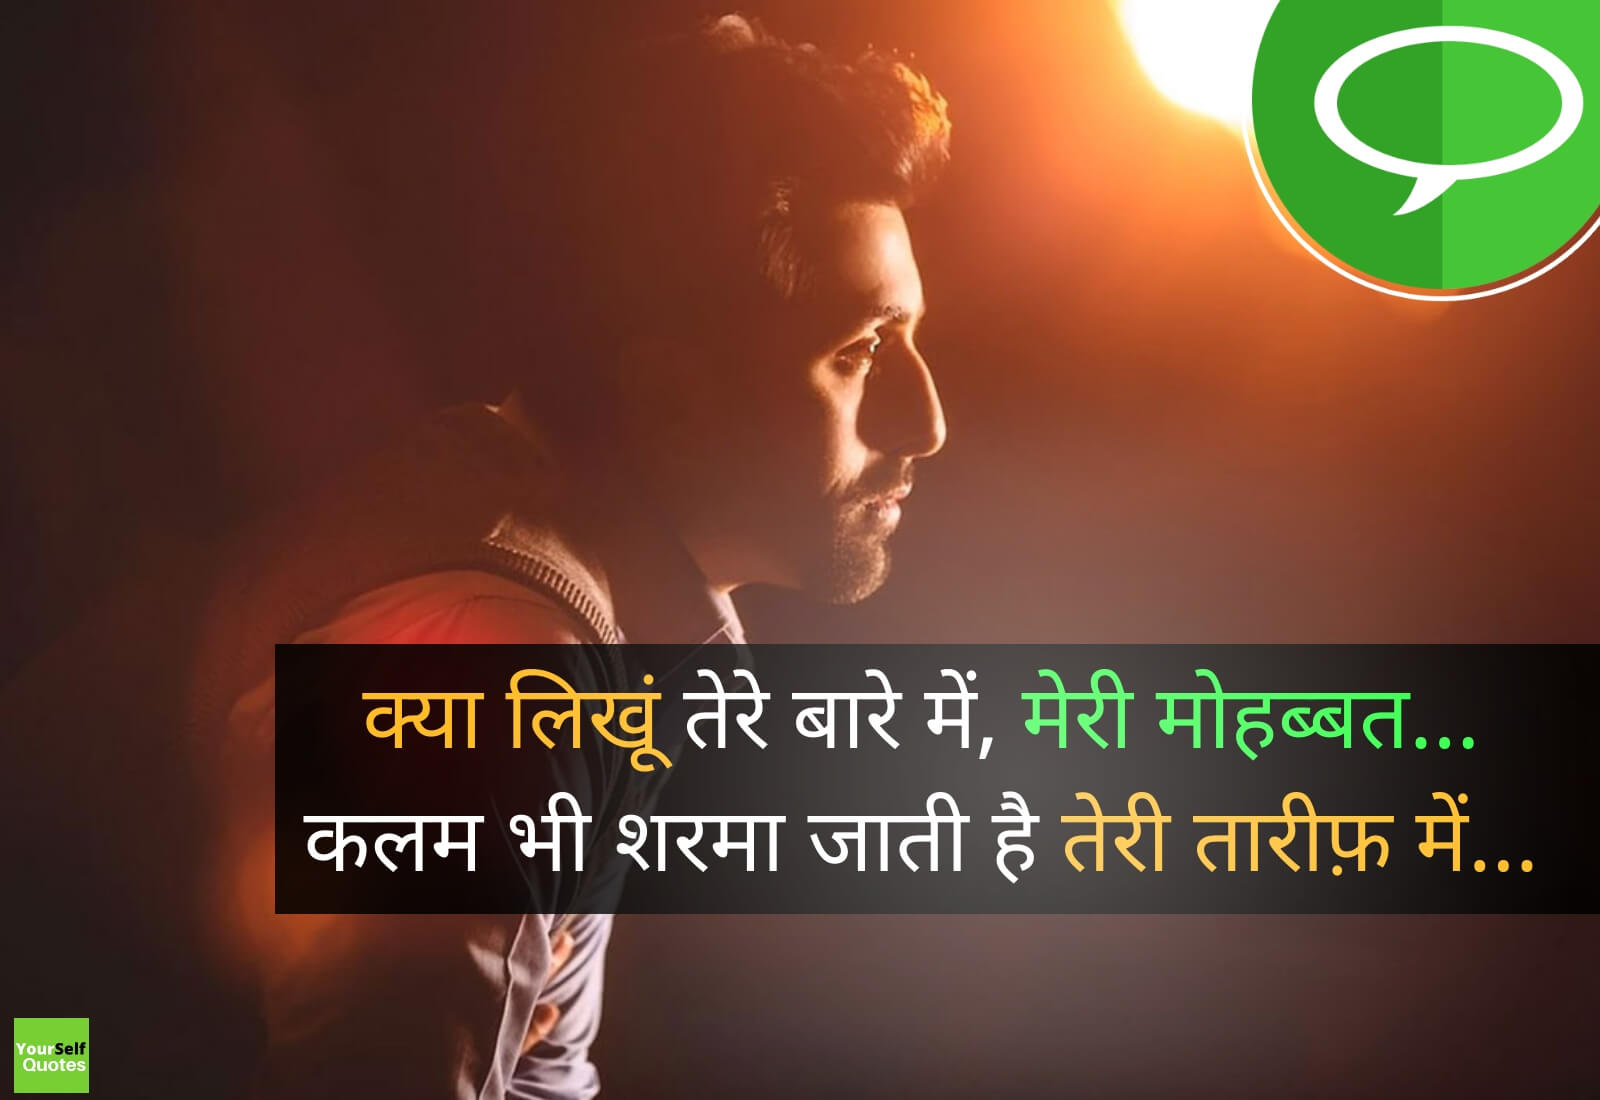 Hindi Status With Images for Lovers